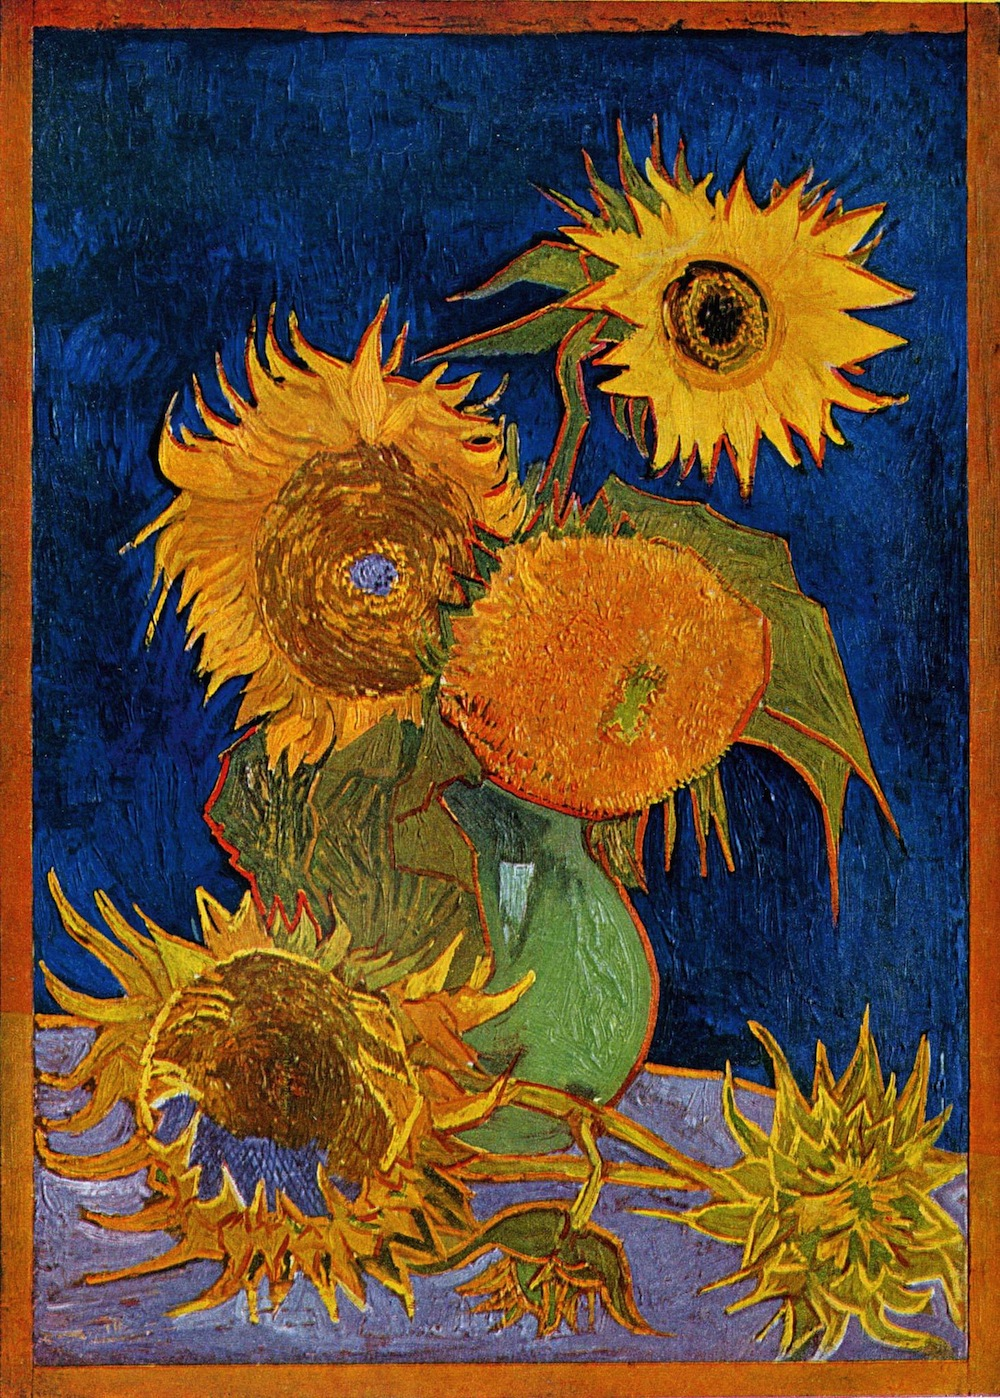 Stems Fit For Van Goghs Vase The Task At Hand - Artist plants 12 acre field to create a giant artwork inspired by van gogh